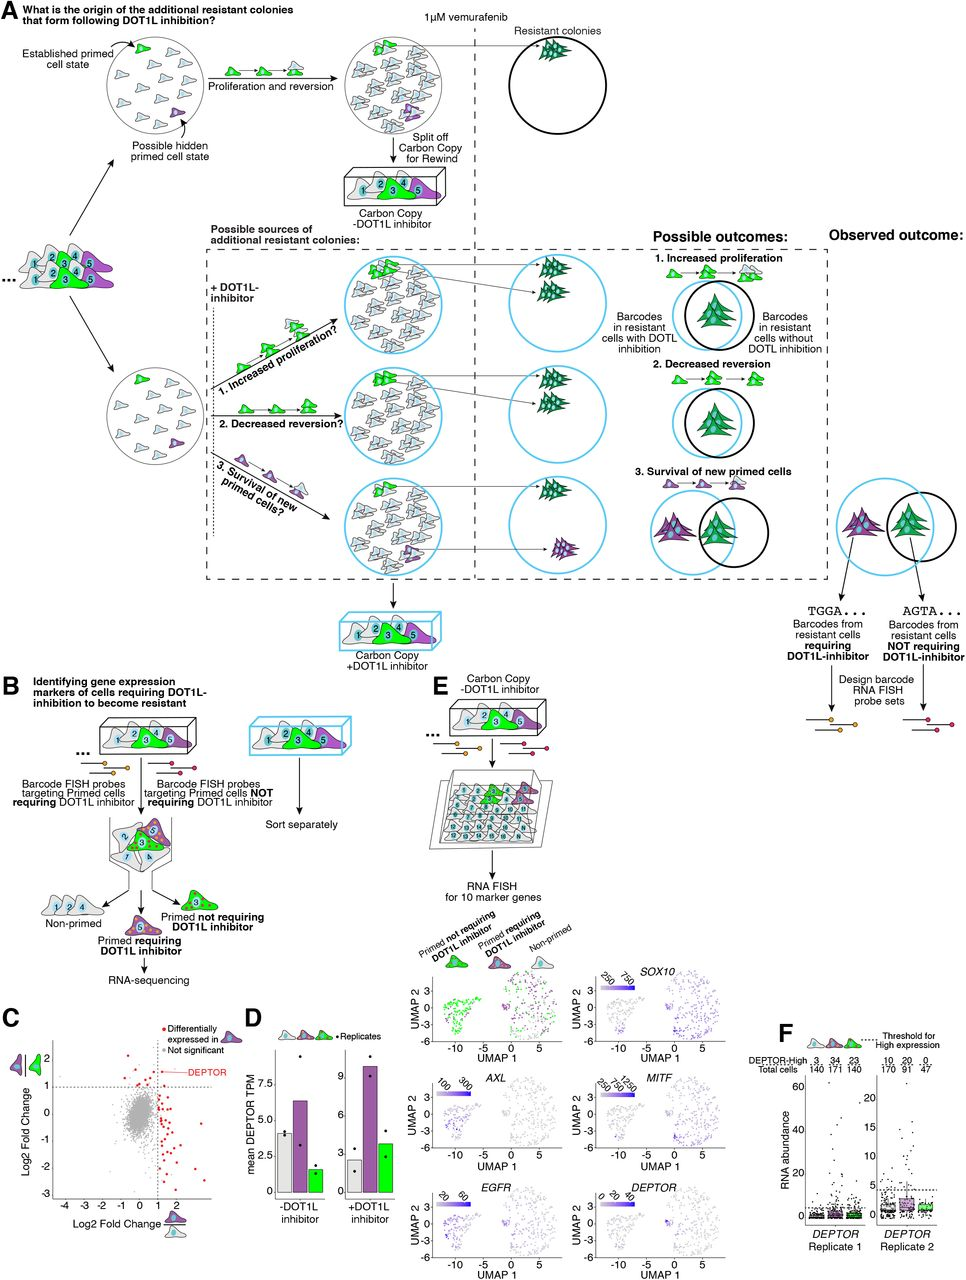 """Rewind identifies a distinct subpopulation of cells that require DOT1L inhibition to become vemurafenib resistant. A . Experimental approach for identifying the subpopulation of cells that require DOT1L inhibition to become vemurafenib resistant. These experiments began with approximately 400,000 WM989 A6-G3 cells transduced at an MOI ∼ 1.0 and allowed to divide for 6 days before splitting the culture into two groups. We treated one group with 4 μM DOT1L inhibitor (pinometostat) and the other with vehicle control (DMSO) for another 6 days. We then split each group again, fixing half as our """"Carbon Copies"""" and treating the other half with 1 μM vemurafenib for ∼2.5 weeks. After vemurafenib treatment, we extracted genomic DNA from the remaining cells for barcode sequencing. B . We compared the abundance of each barcode identified in resistant cells pre-treated with DOT1L inhibitor versus resistant cells pre-treated with vehicle control as shown in A. This comparison revealed a subset of barcodes with a greater relative abundance in resistant cells pre-treated with DOT1L inhibitor than resistant cells pre-treated with vehicle control (blue points). We used these barcodes to design RNA FISH probes targeting cells requiring DOT1L inhibition to become vemurafenib resistant. A separate set of barcodes showed similar high abundance with or without DOT1L inhibition (orange points), which we used to design RNA FISH probes targeting primed cells not requiring DOT1L inhibition to become resistant. C . Using these probes, we labeled and sorted cells requiring DOT1L inhibition to become vemurafenib resistant (blue), primed cells not requiring DOT1L inhibition (orange), and non-primed cells (gray) from Carbon Copies for RNA sequencing. We separately sorted cells from Carbon Copies treated with DOT1L inhibitor and Carbon Copies treated with vehicle control (2 biological replicates each). D . To identify markers of cells that require DOT1L inhibition to become resistant, we used DESe"""